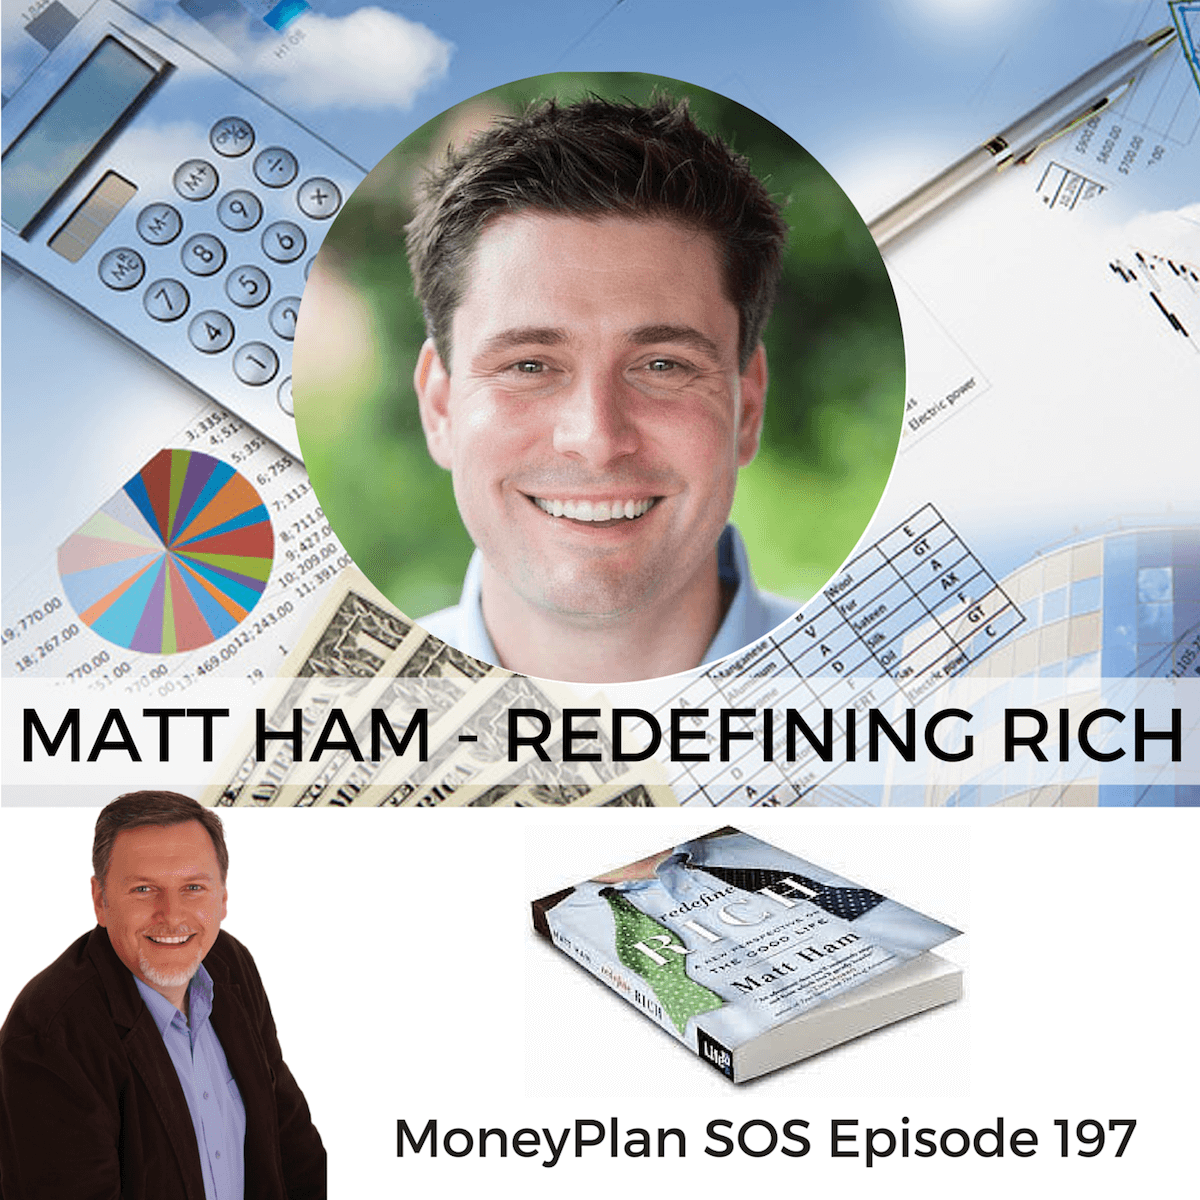 Matt Ham has Redefined Rich